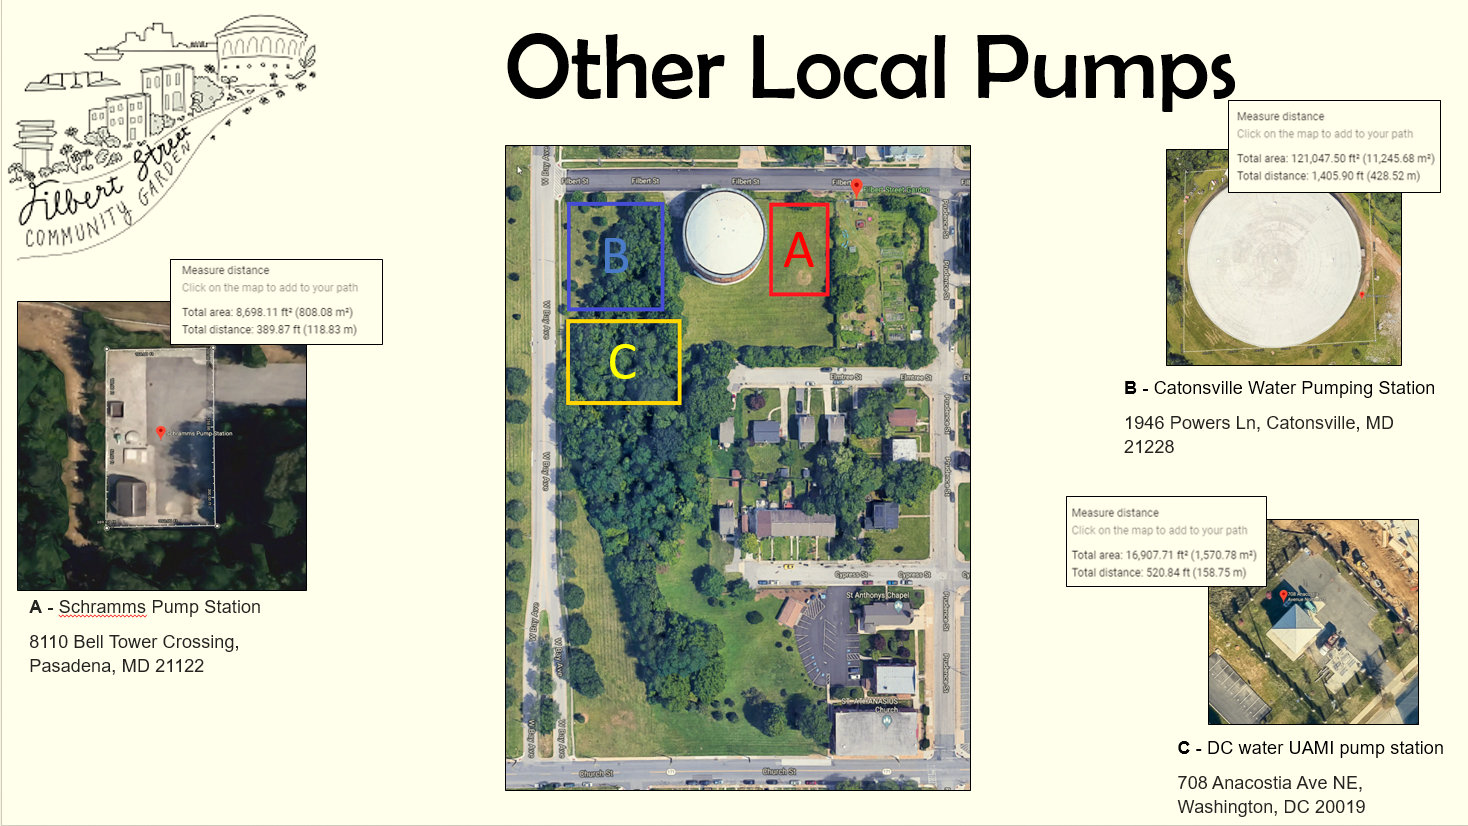 Overlay prepared by supporters showing alternate pumping station sites, based on the dimensions of other nearby stations. The garden is to the right of site A. (Filbert Street Garden)